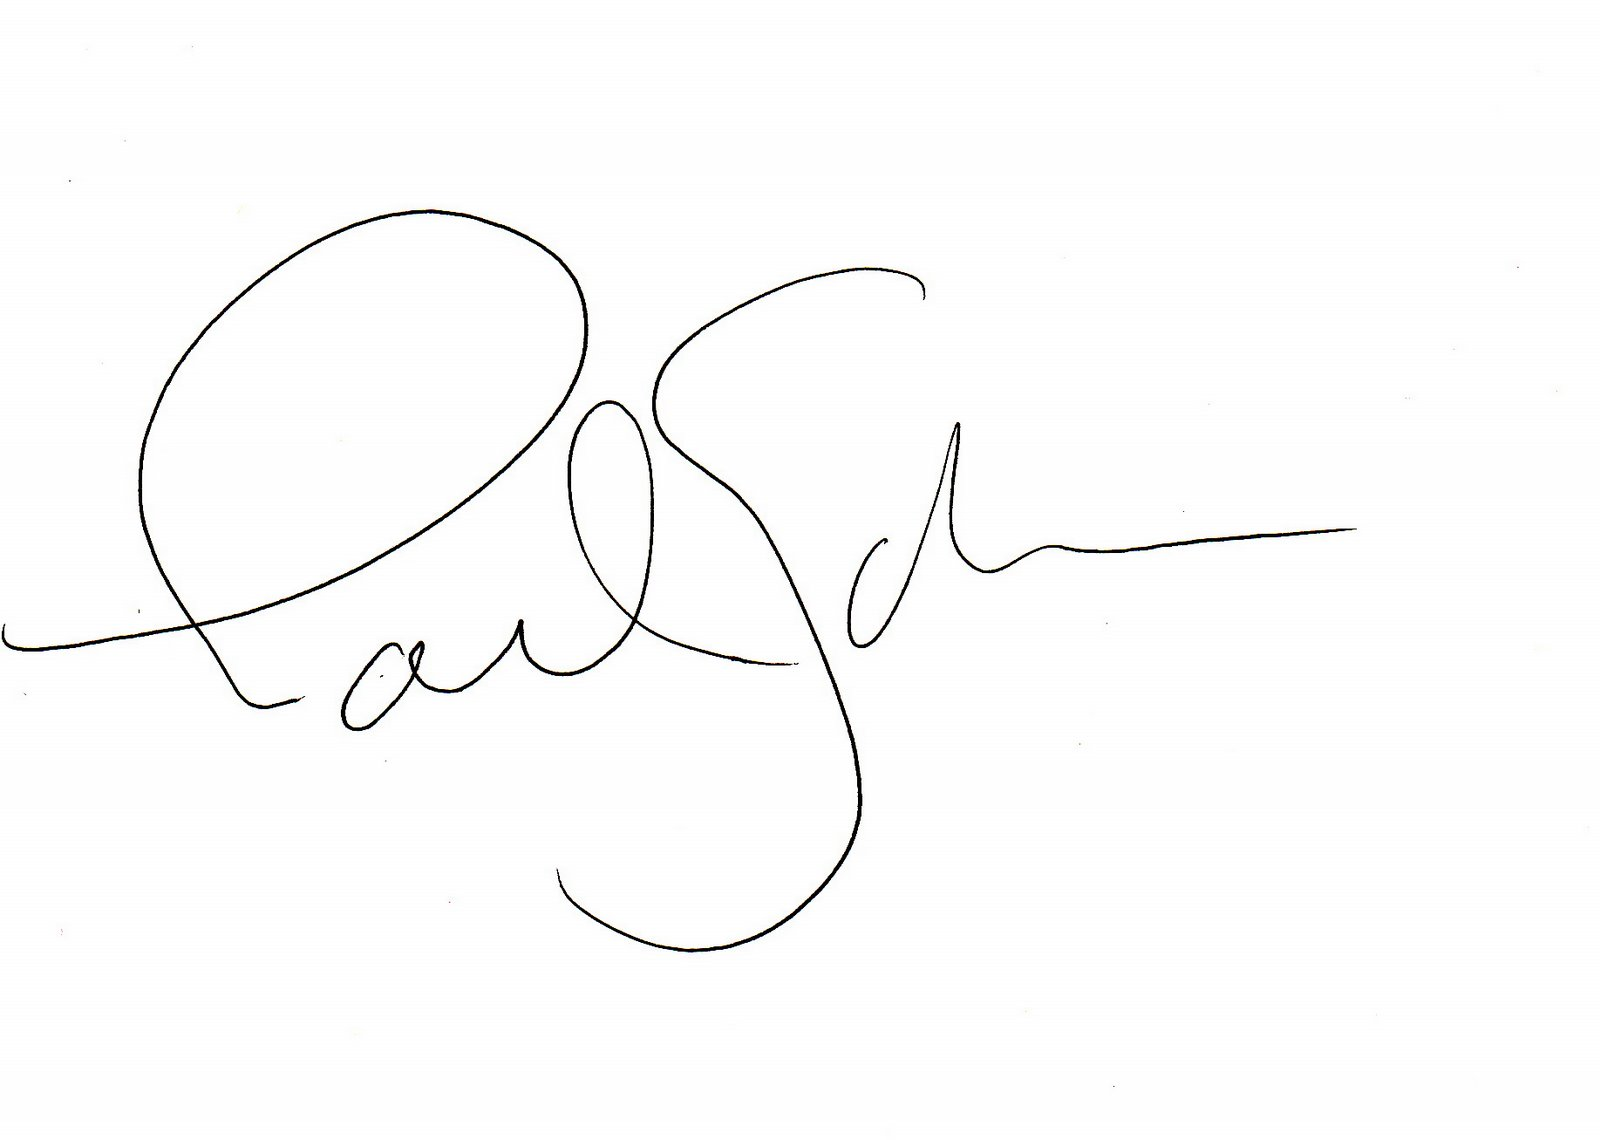 Paul Schmelzer as signed by Laurie Anderson.